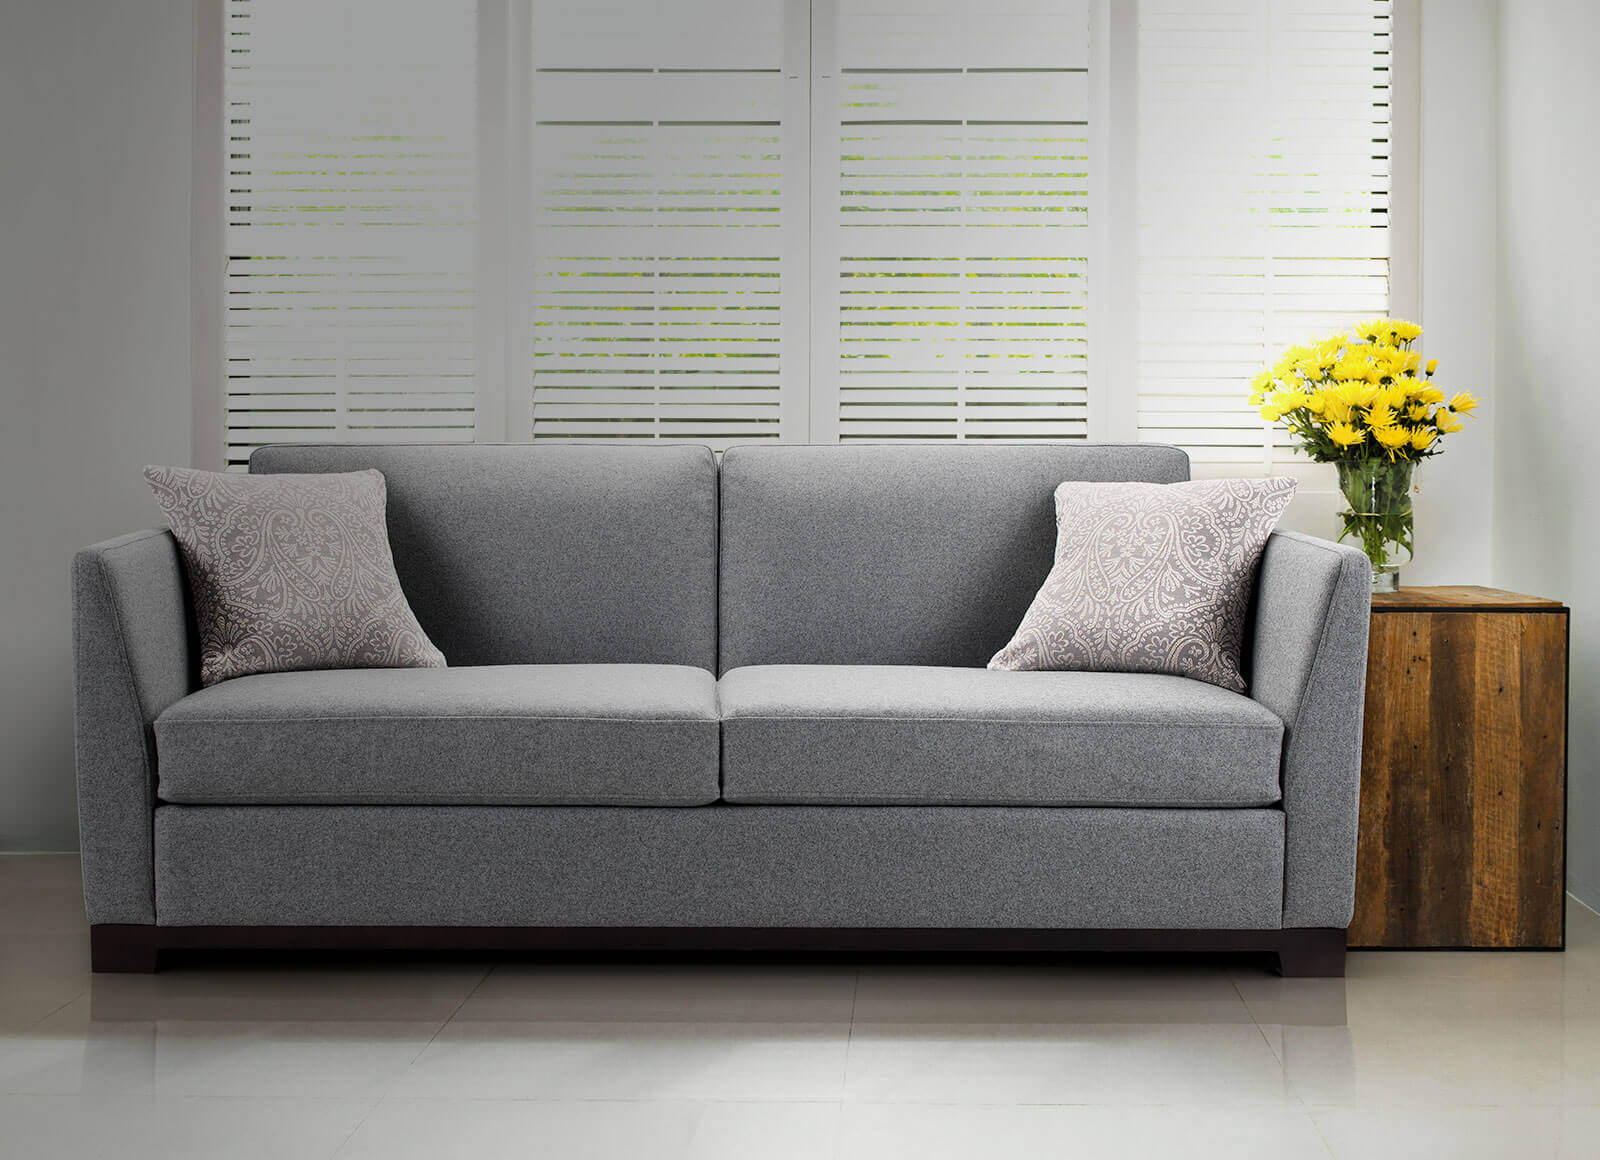 Sofa Beds For Every Day Use Comfort And Night